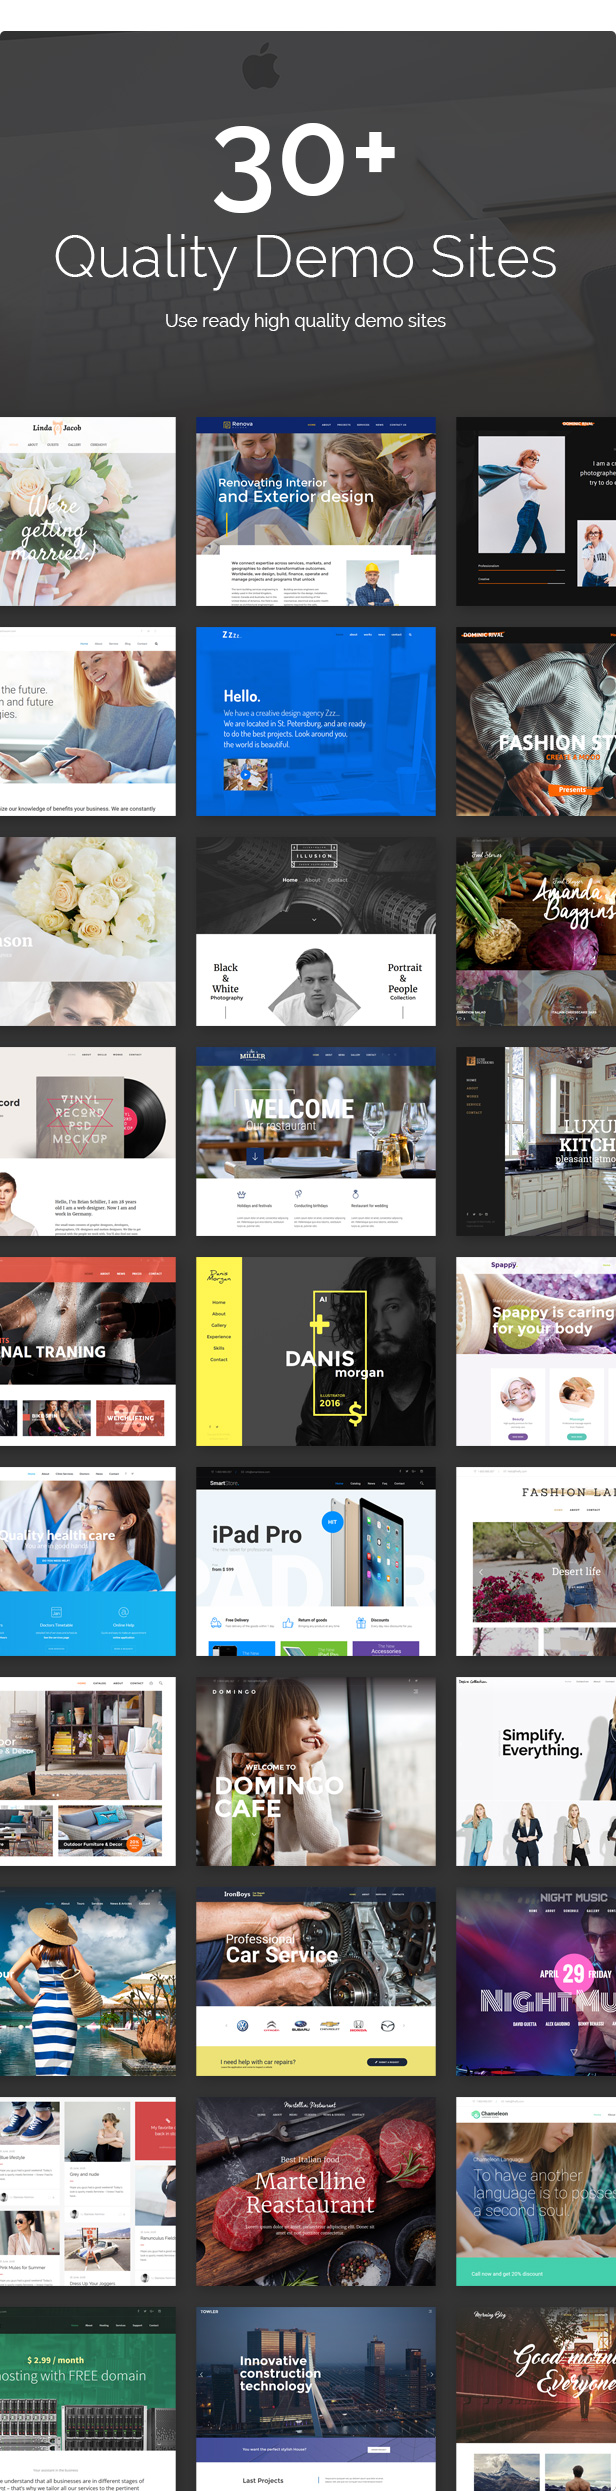 Firefly - Responsive Multi-Purpose WordPress Theme - 3